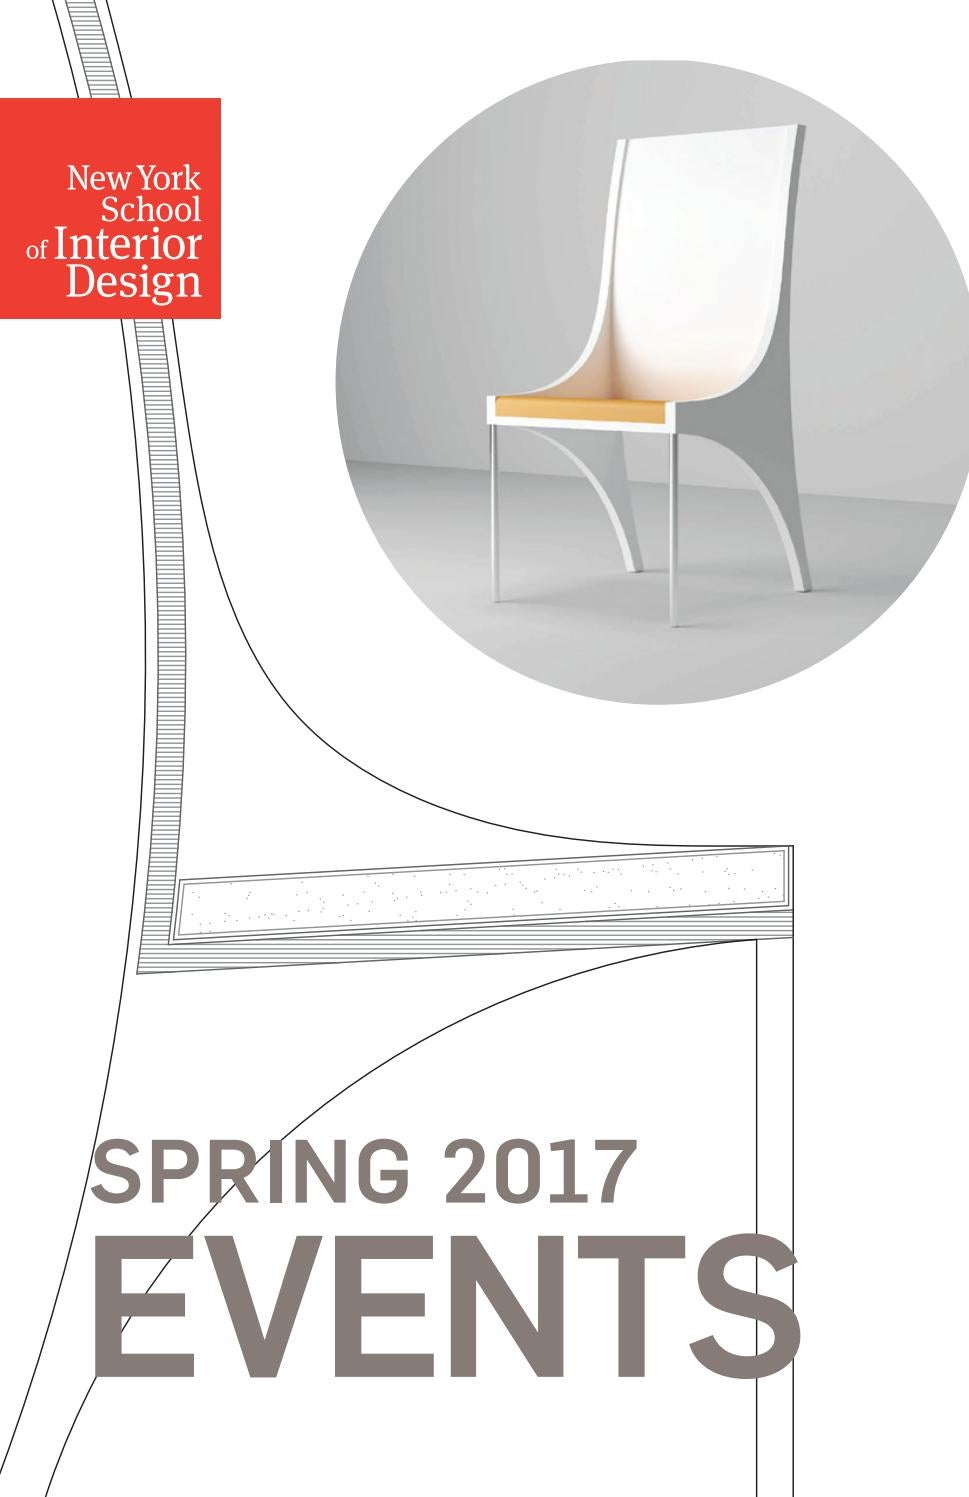 Spring 2017 Events By New York School Of Interior Design